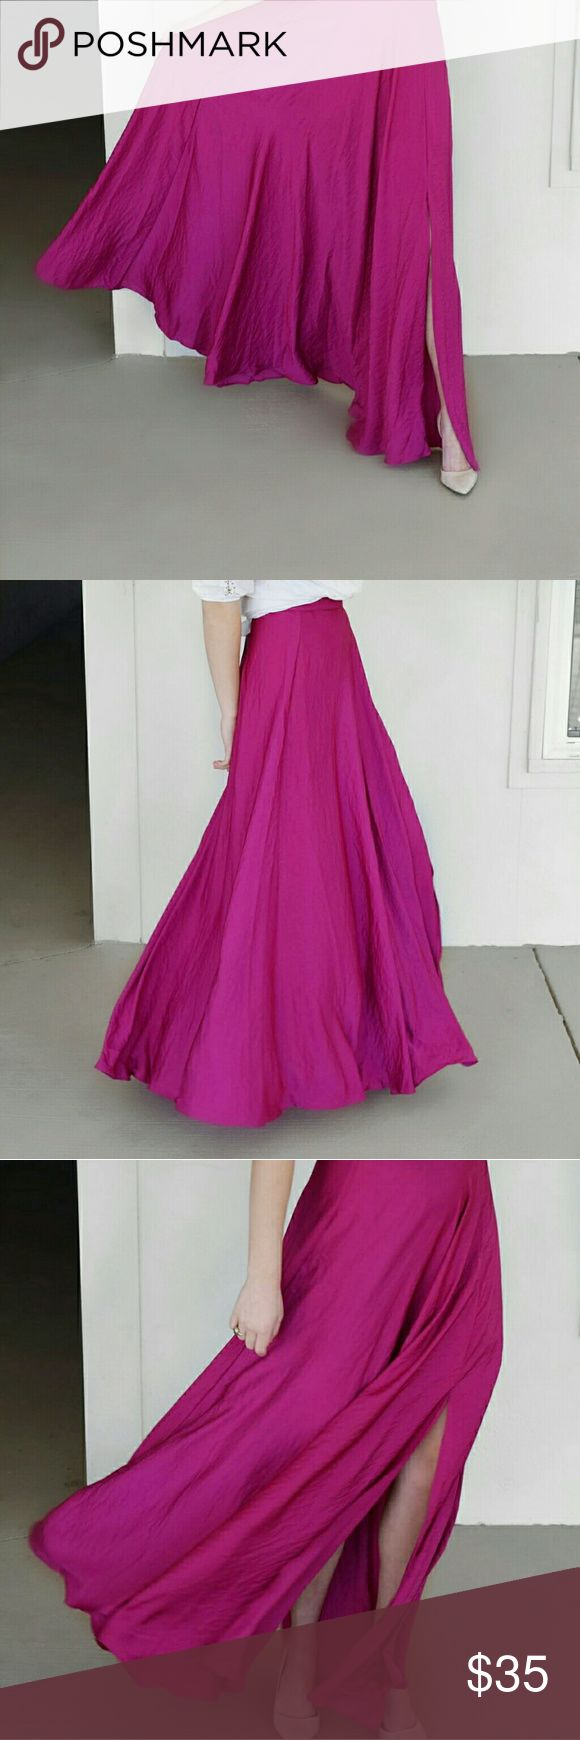 NWT Nasty Gal Stunning Purple Shiny Maxi Skirt This deep magenta/purple maxi skirt is from Nasty Gal. Brand is Lucy Paris. This skirt would be stunning in this fall and winter months. Dress it up with heels and nice top or wear it more casual with wedges and a flowy top! Perfect piece for festivals! Never worn. I am 5 foot 9 in. W/ about 3 inch heels for reference. I have a would fit 25- 28 ish inch waist. Nasty Gal Skirts Maxi